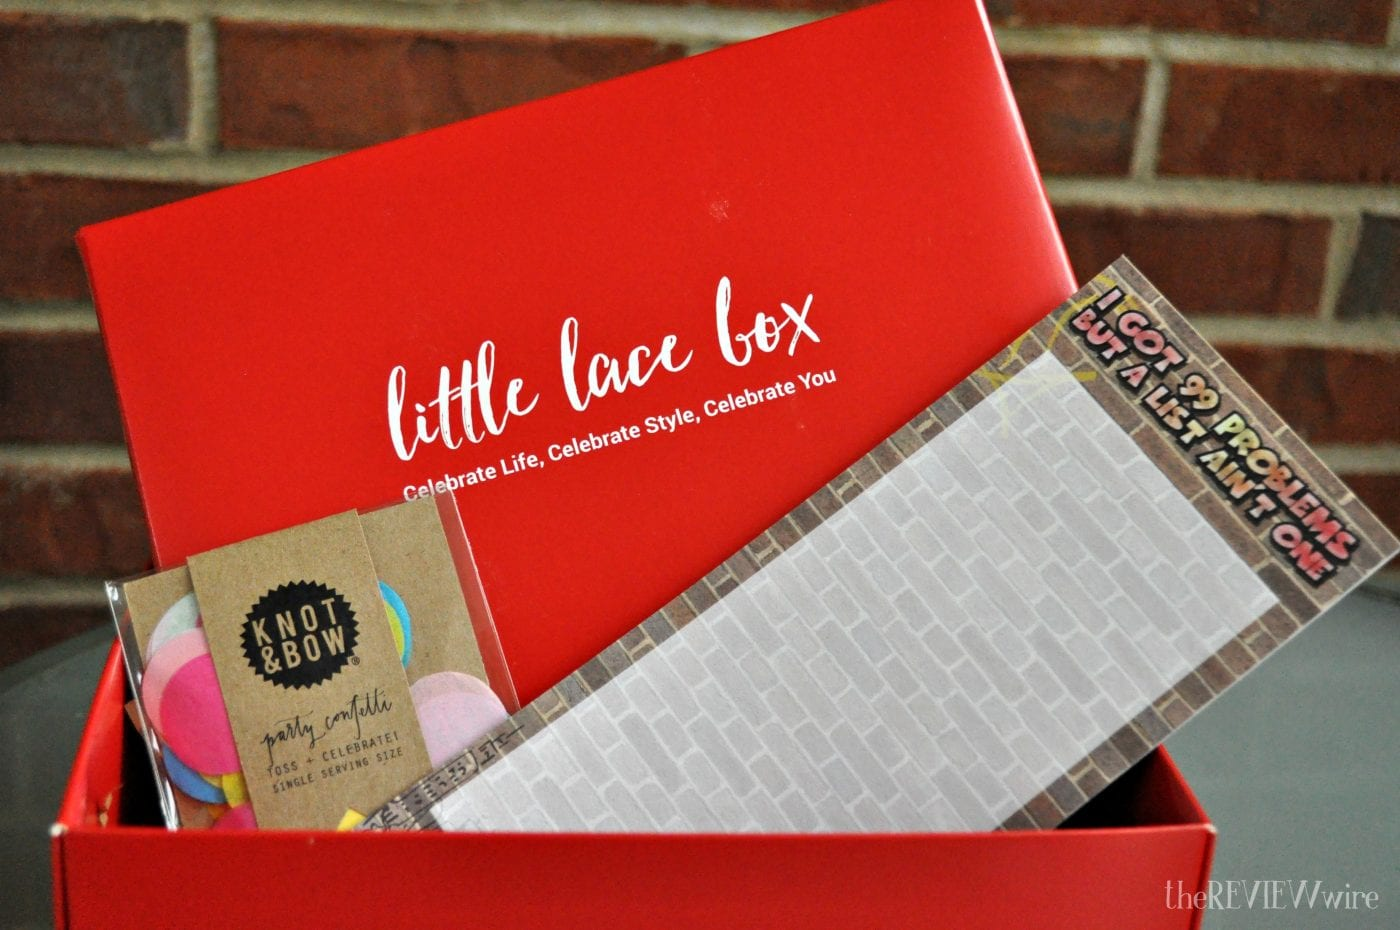 Stationary from Little Lace Box